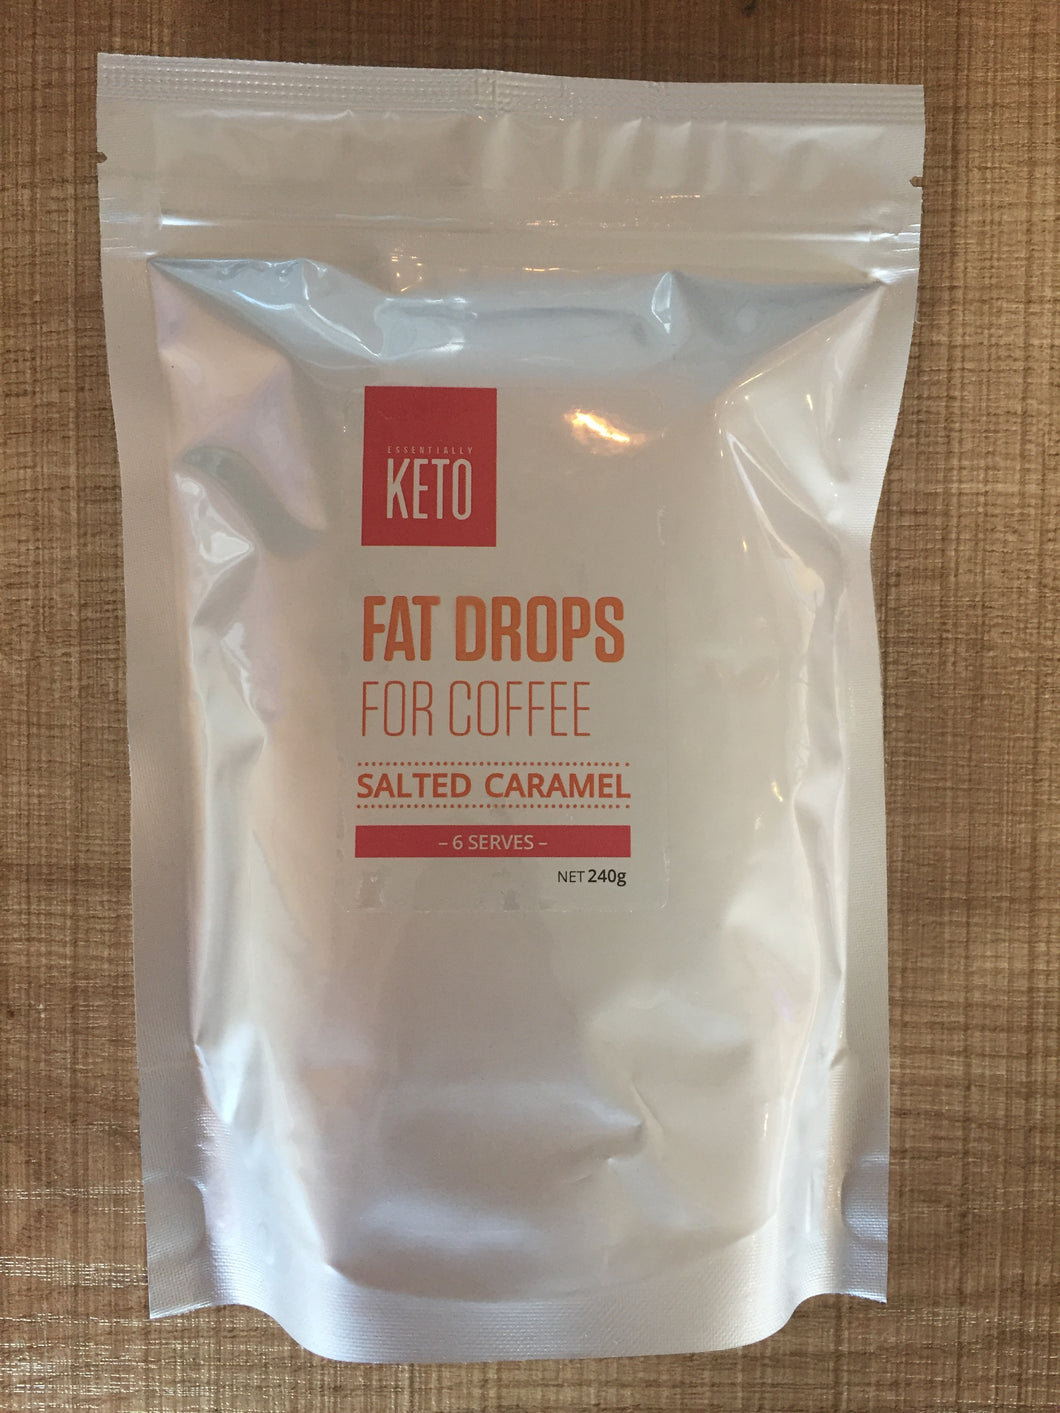 Essentially Keto Salted Caramel Fat Drops -6 Serves $21 (available in-store only)